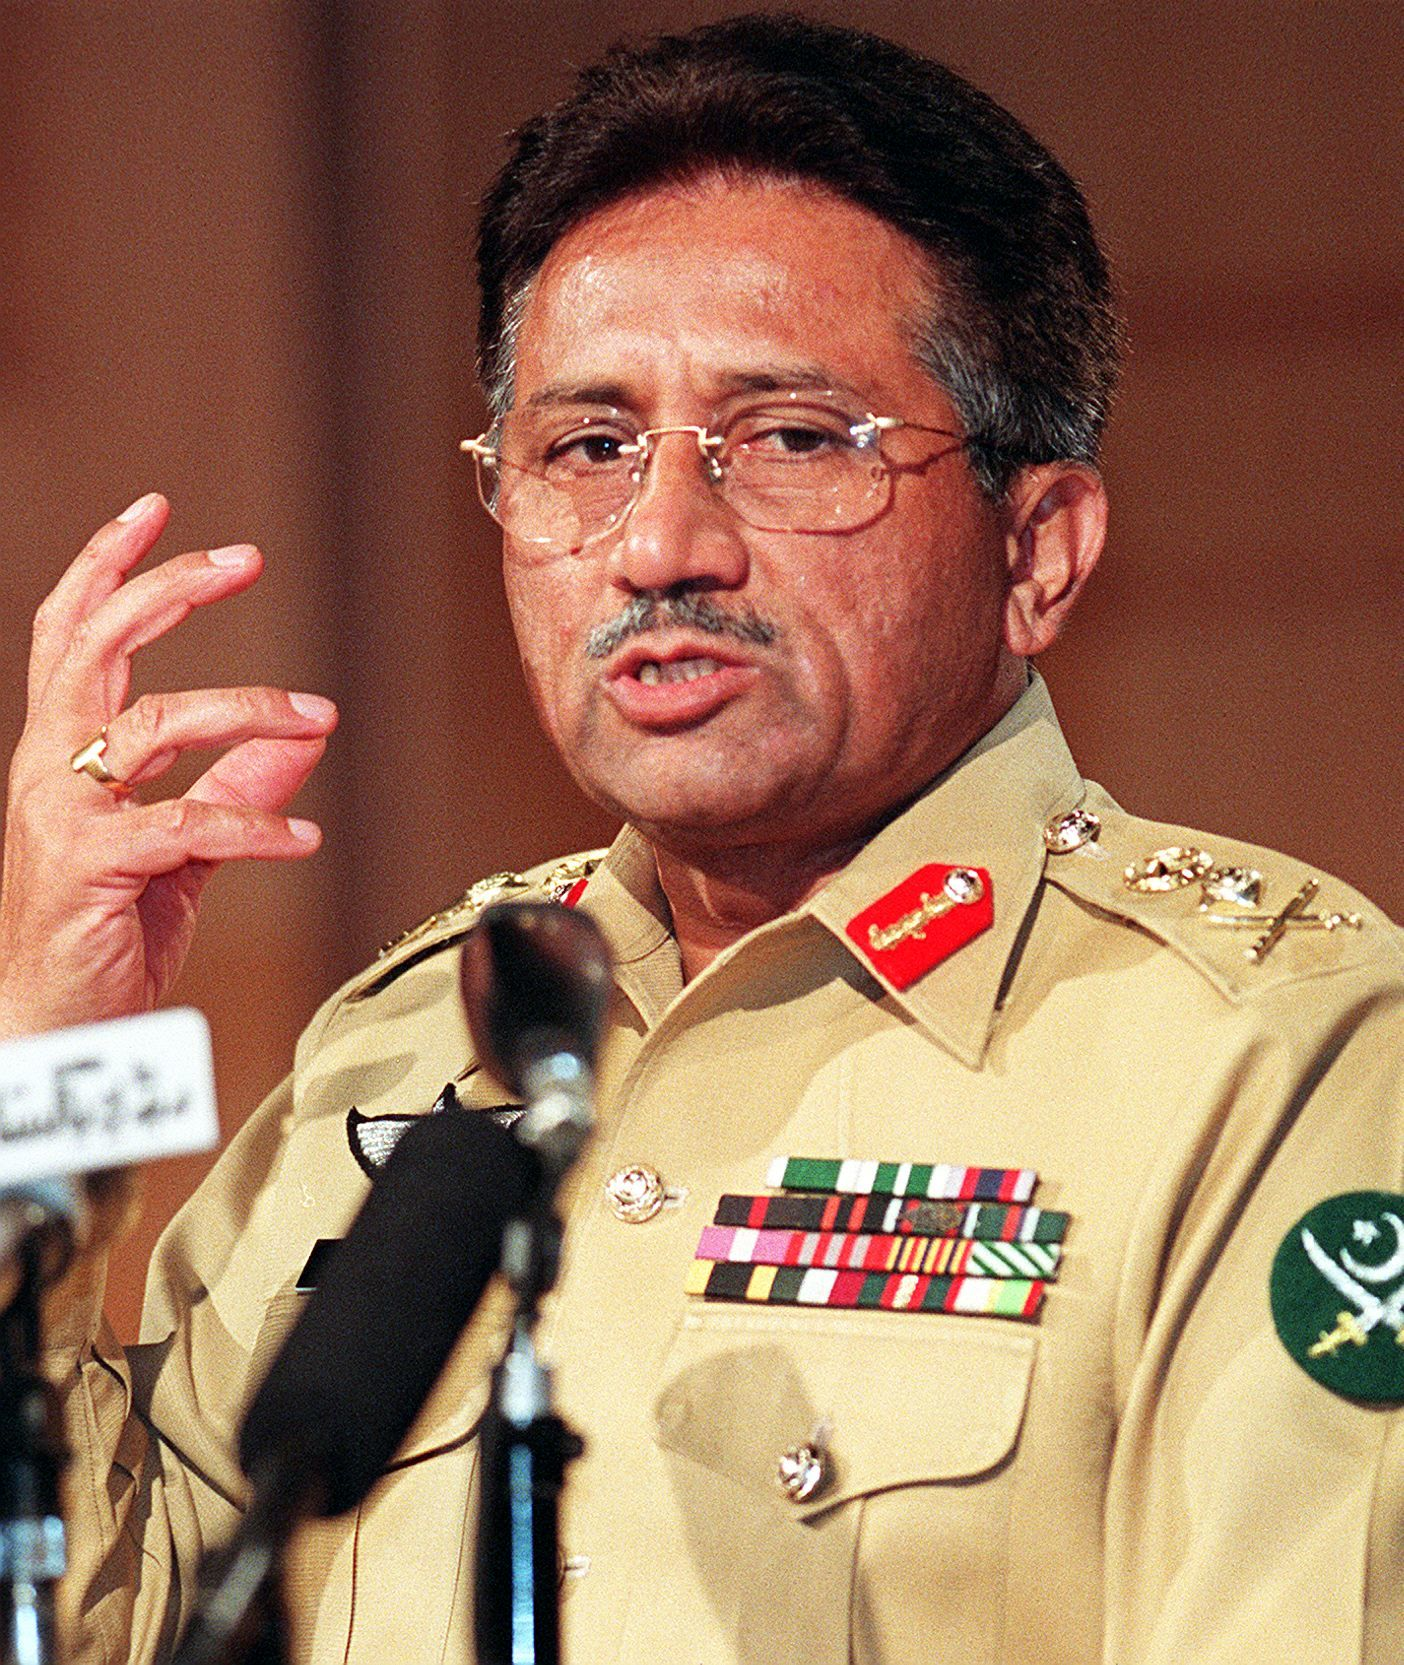 Military ruler General Pervez Musharraf gives his four-point agenda during his first press conference after a bloodless military coup in Islamabad, November 1, 1999. Musharraf said he plans to hold a referendum to seek legitimacy after the army coup the previous month. — AFP